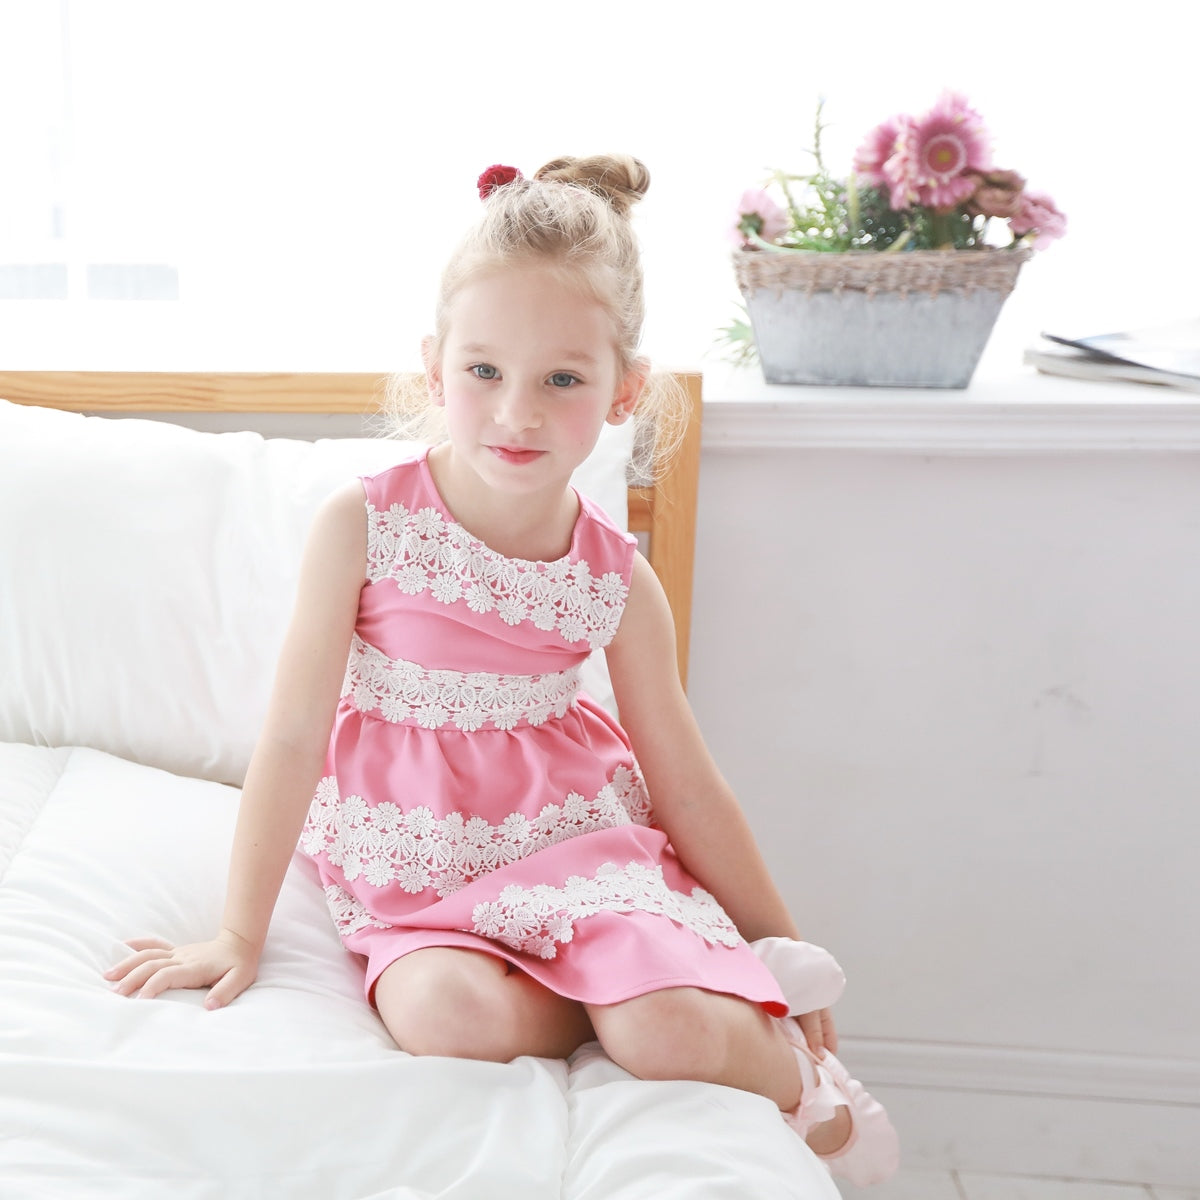 Elegant embroidered dress  (pink / beige) - Bunny n Bloom Mommy & Me Dress